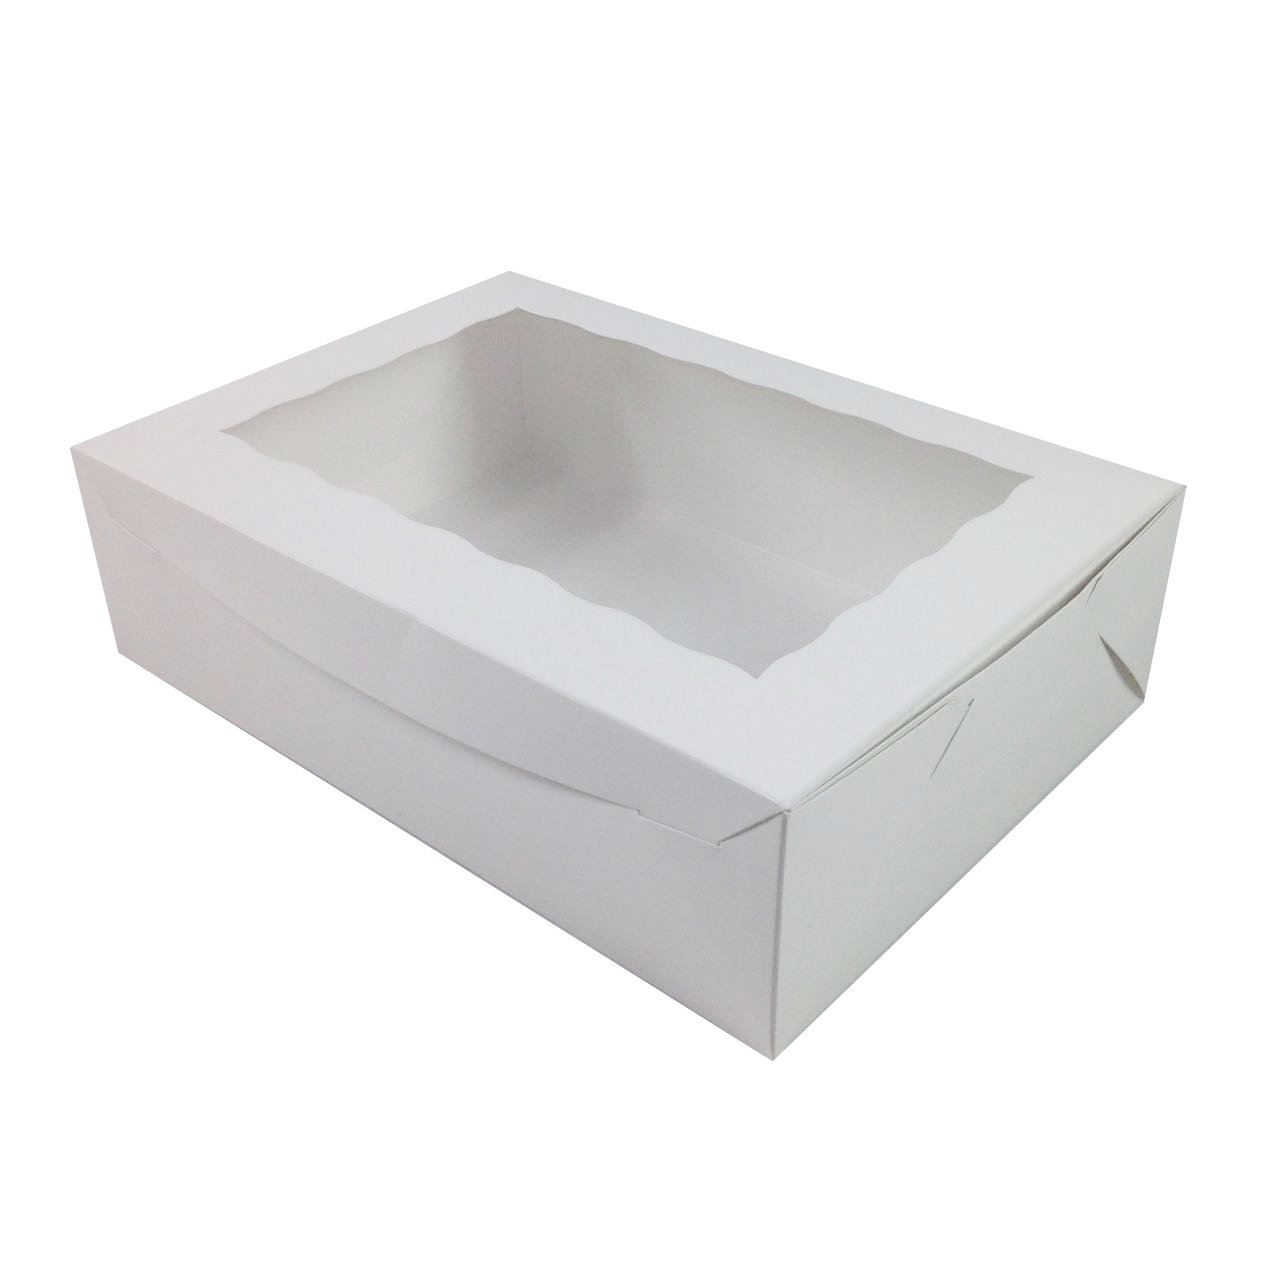 Black Cat Avenue 14'' x 10'' x 4'' Cake Boxes White Window Paperboard Cupcake Boxes Sheet Cake Boxes Donut Boxes Bakery Boxes, 5 Count